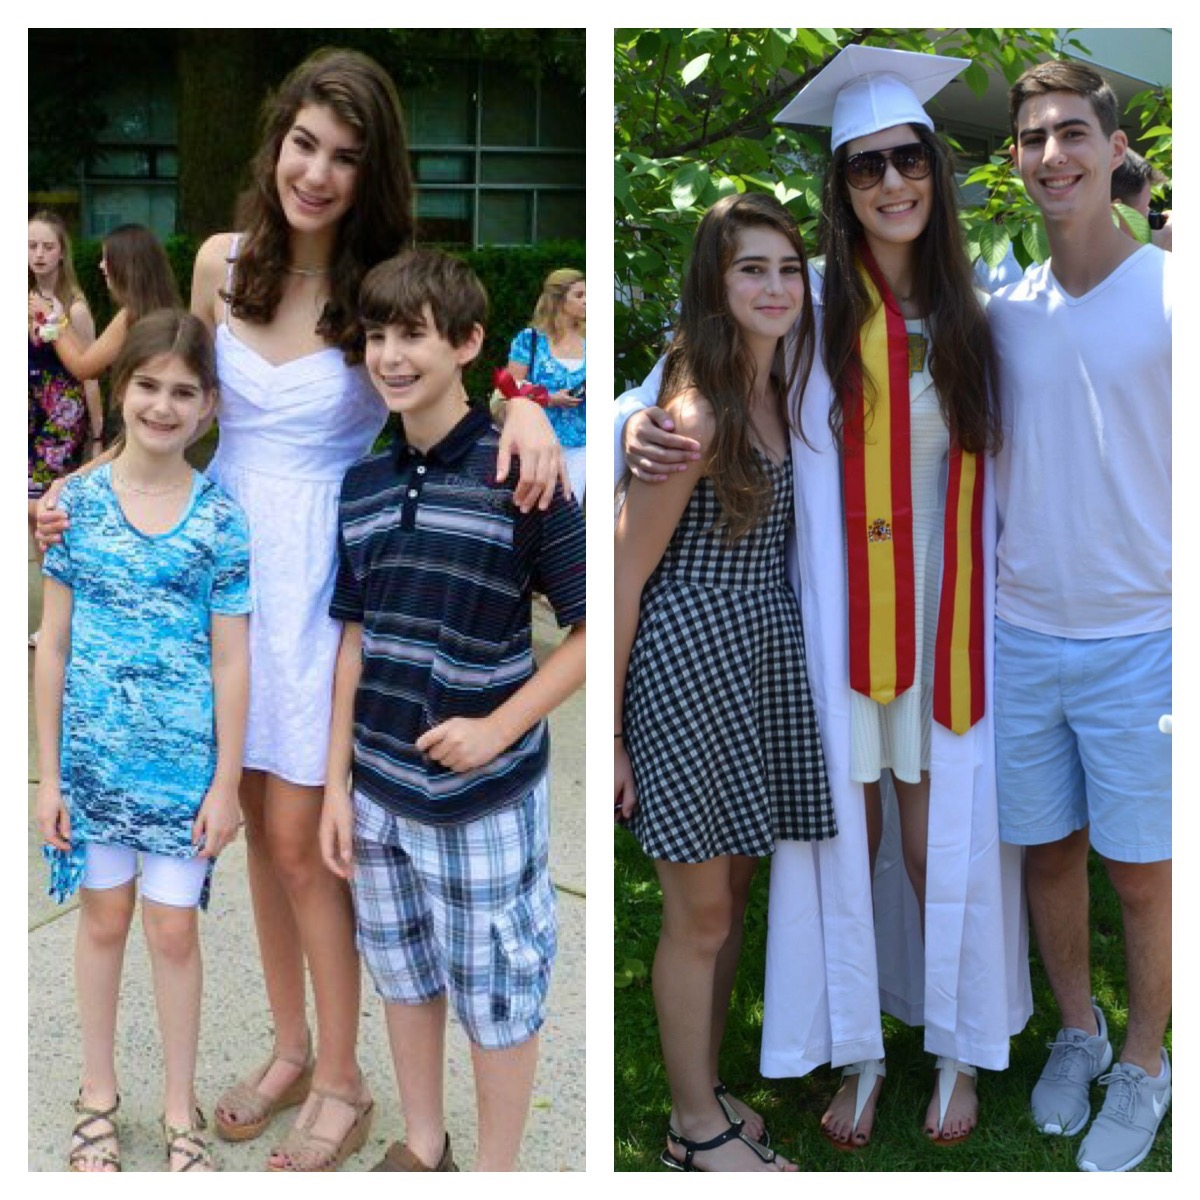 From MS graduation to HS graduation. The height difference though...